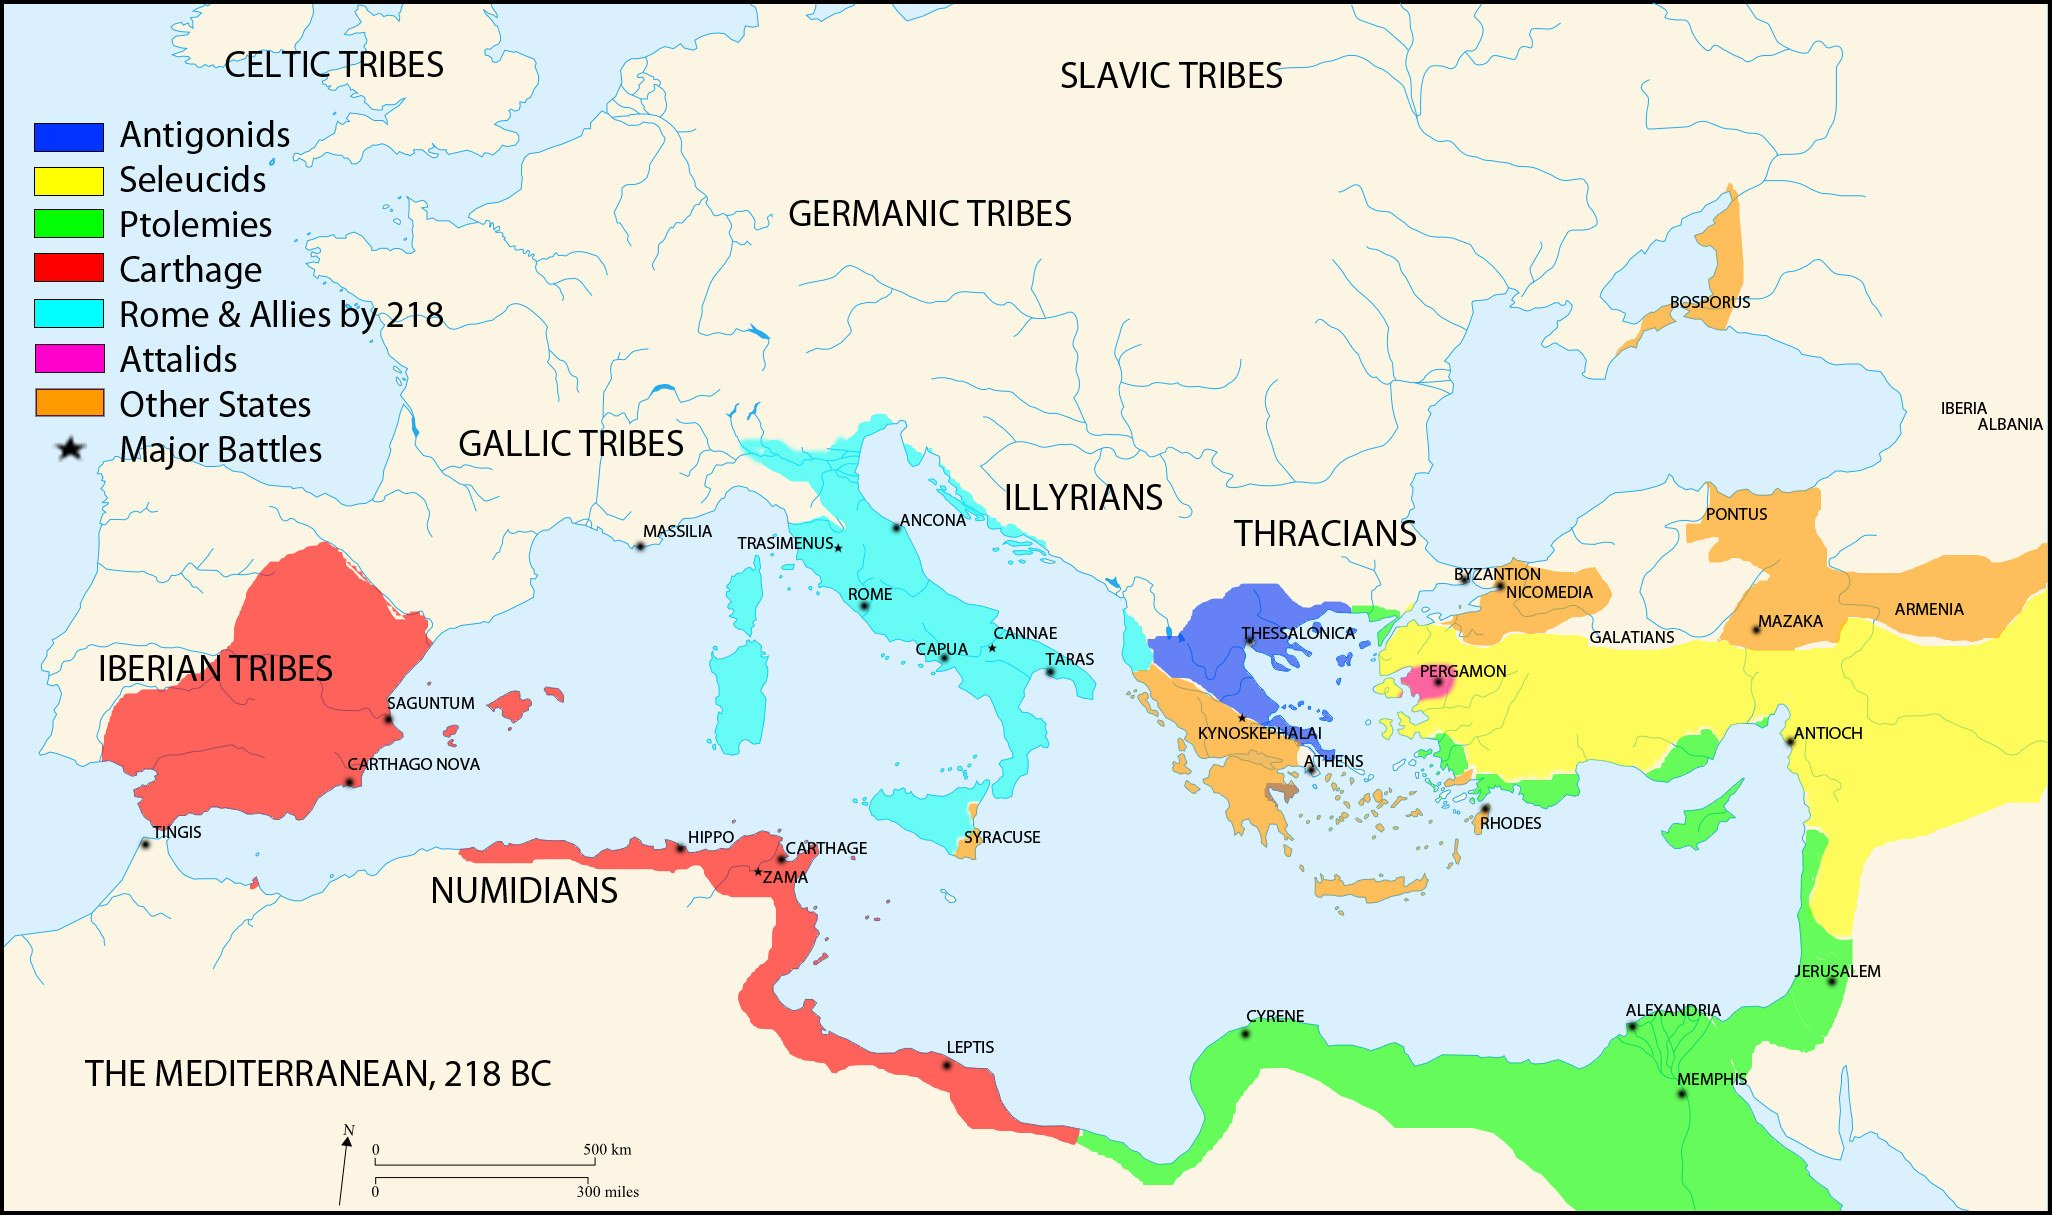 Ancient Mediterranean Map Map of the Mediterranean 218 BCE (Illustration)   Ancient History